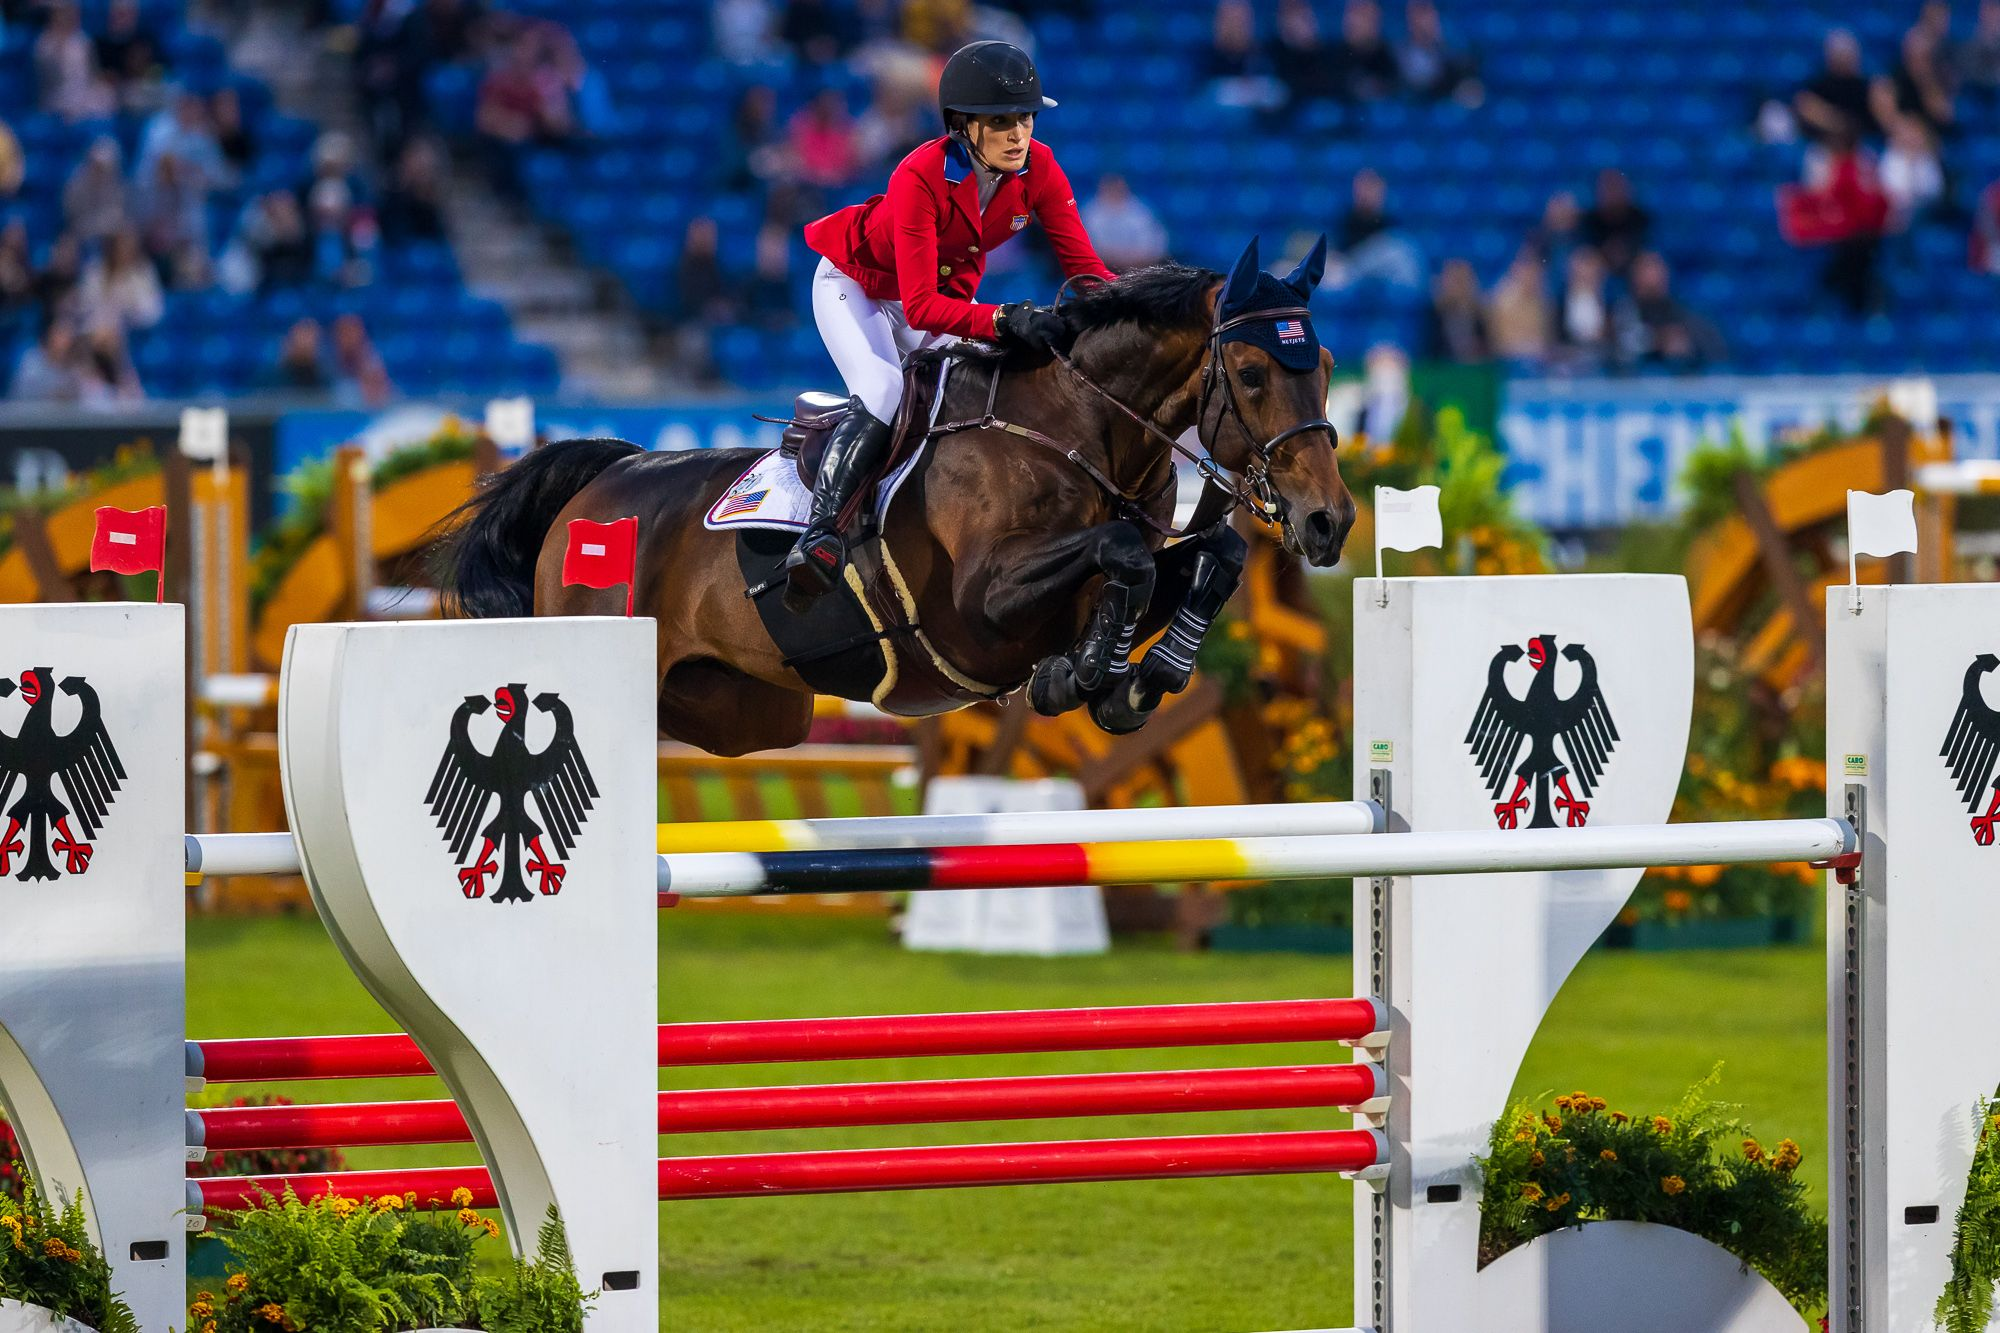 CHIO Aachen: Team USA wins Nations Cup